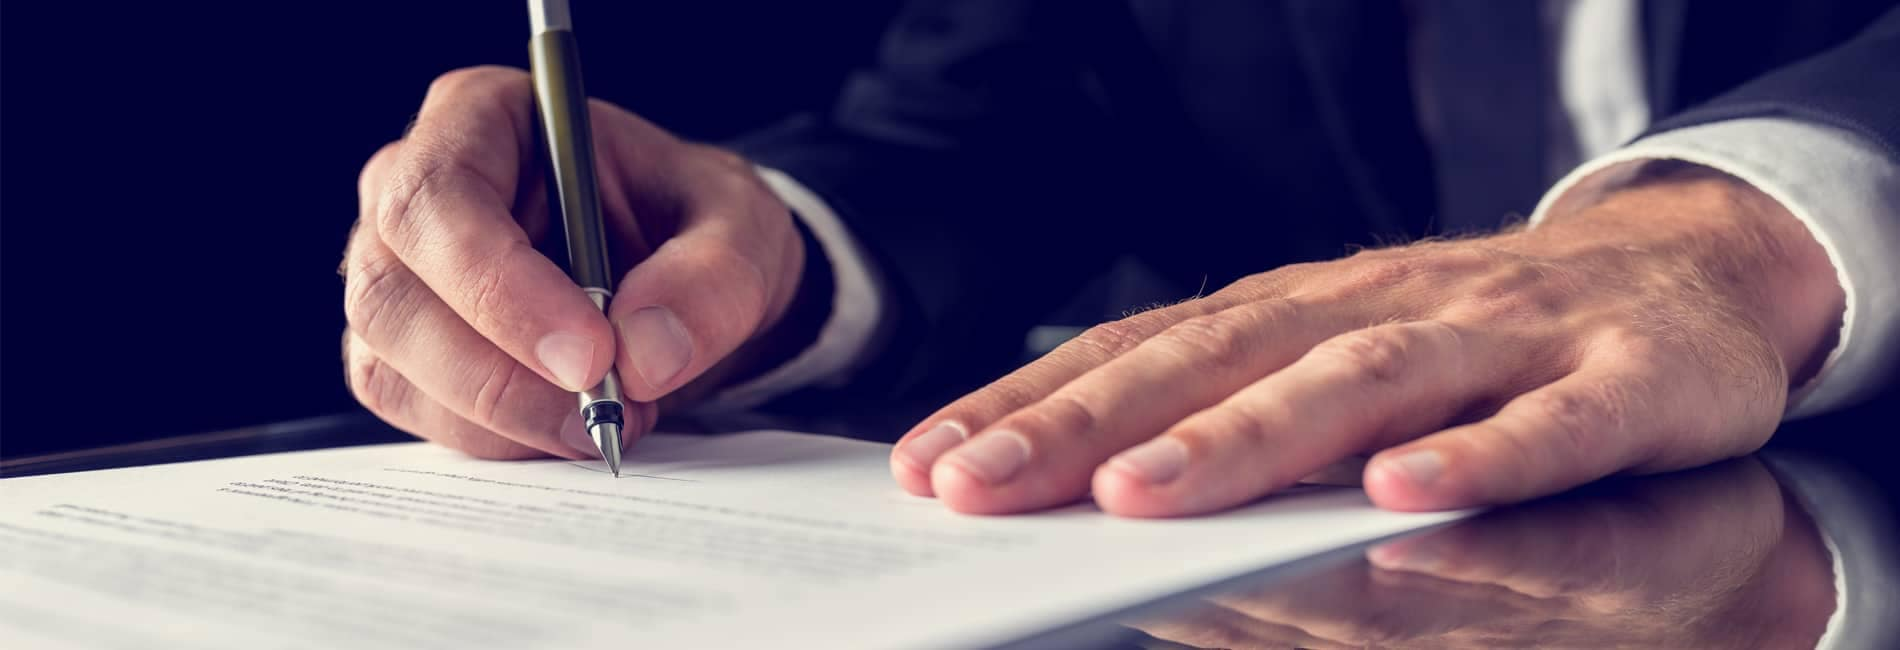 hand with contract